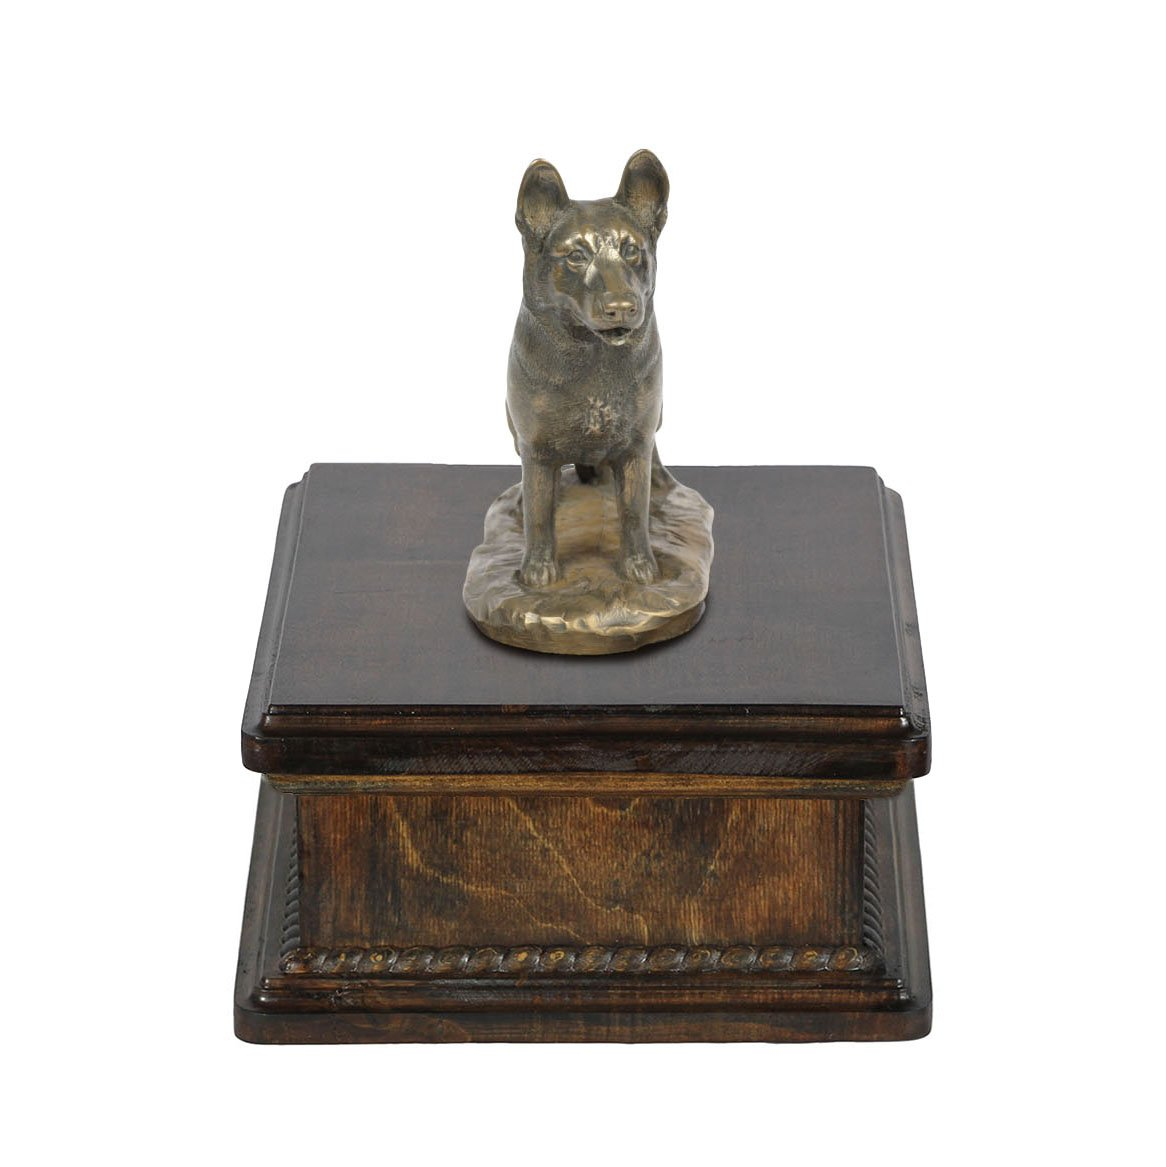 German Shepherd Dog, memorial, urn for dog's ashes, with dog statue, exclusive, ArtDog